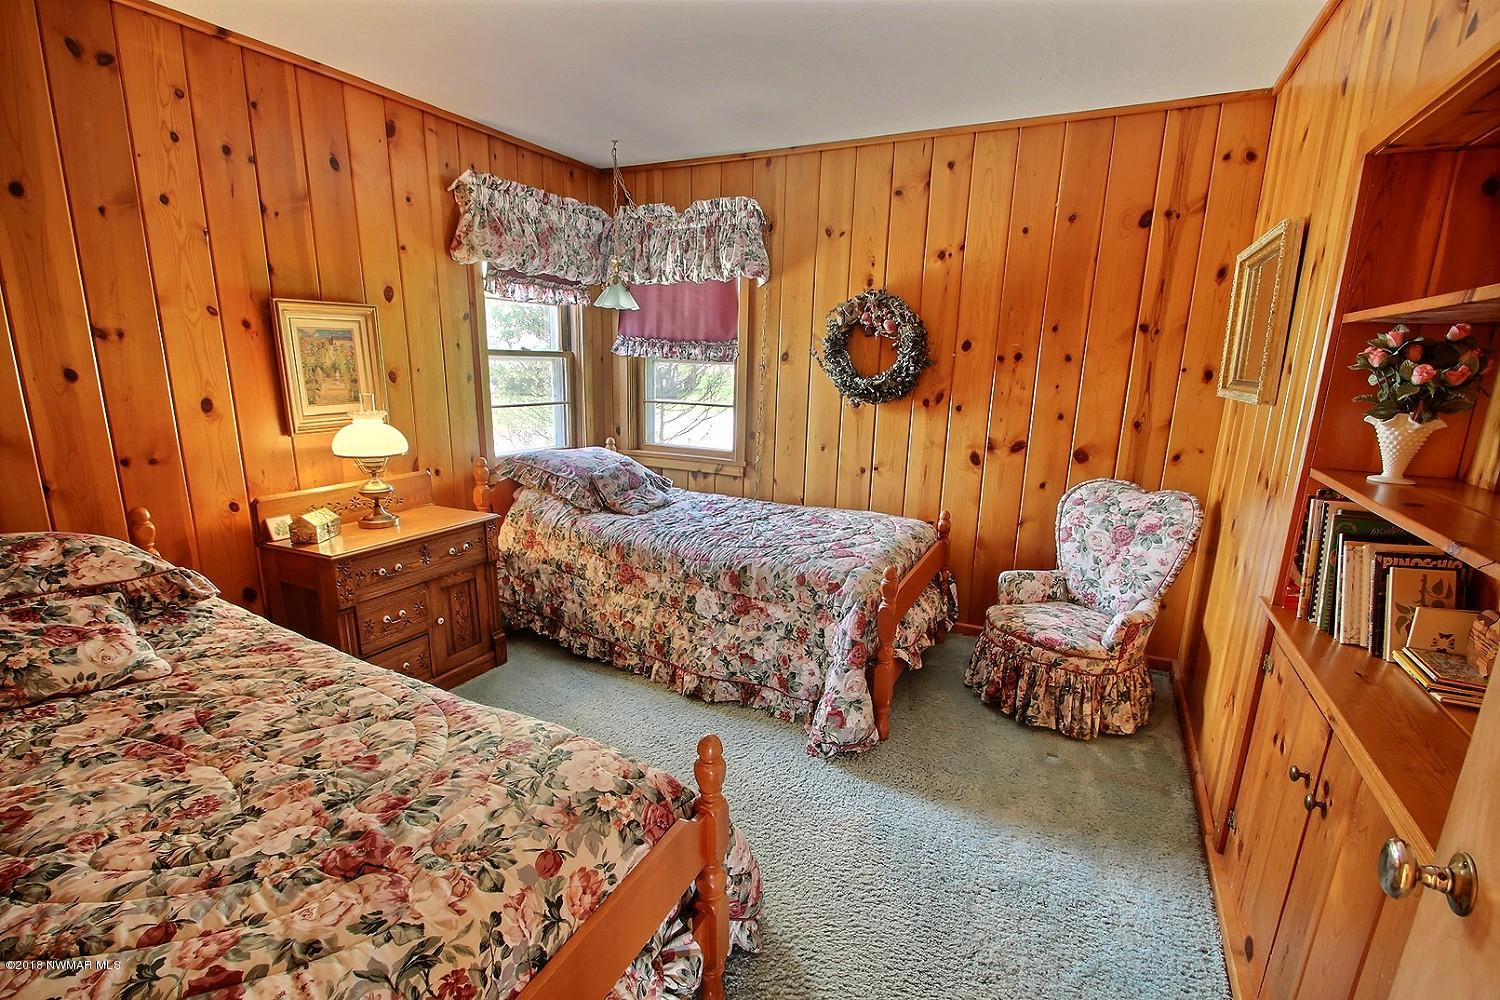 The second bedroom on the main floor offers knotty pine and built in book shelf.